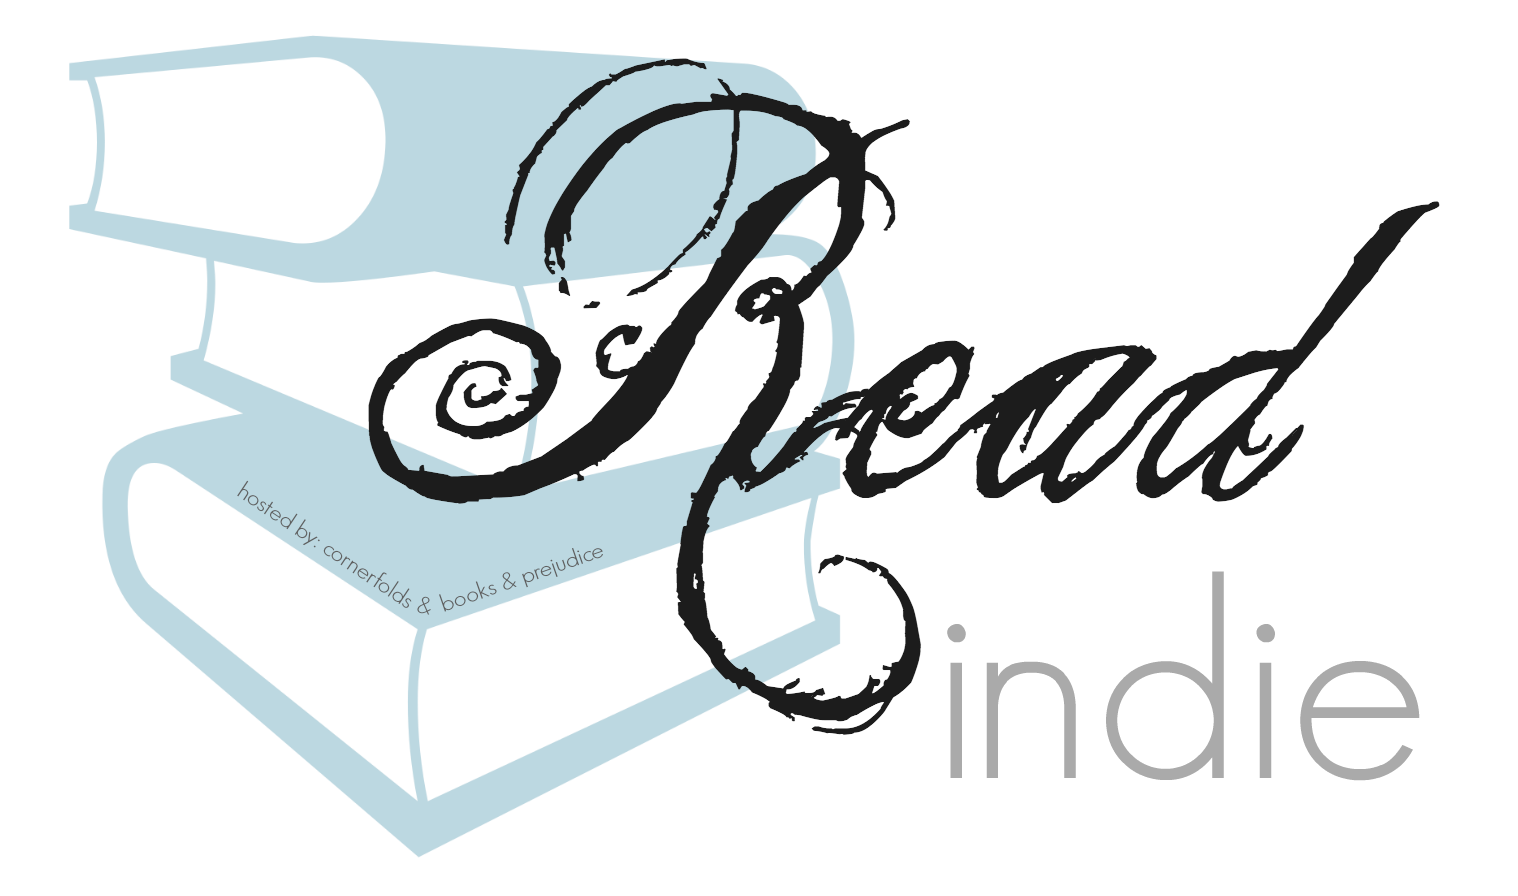 #ReadIndie Challenge – Sign-up